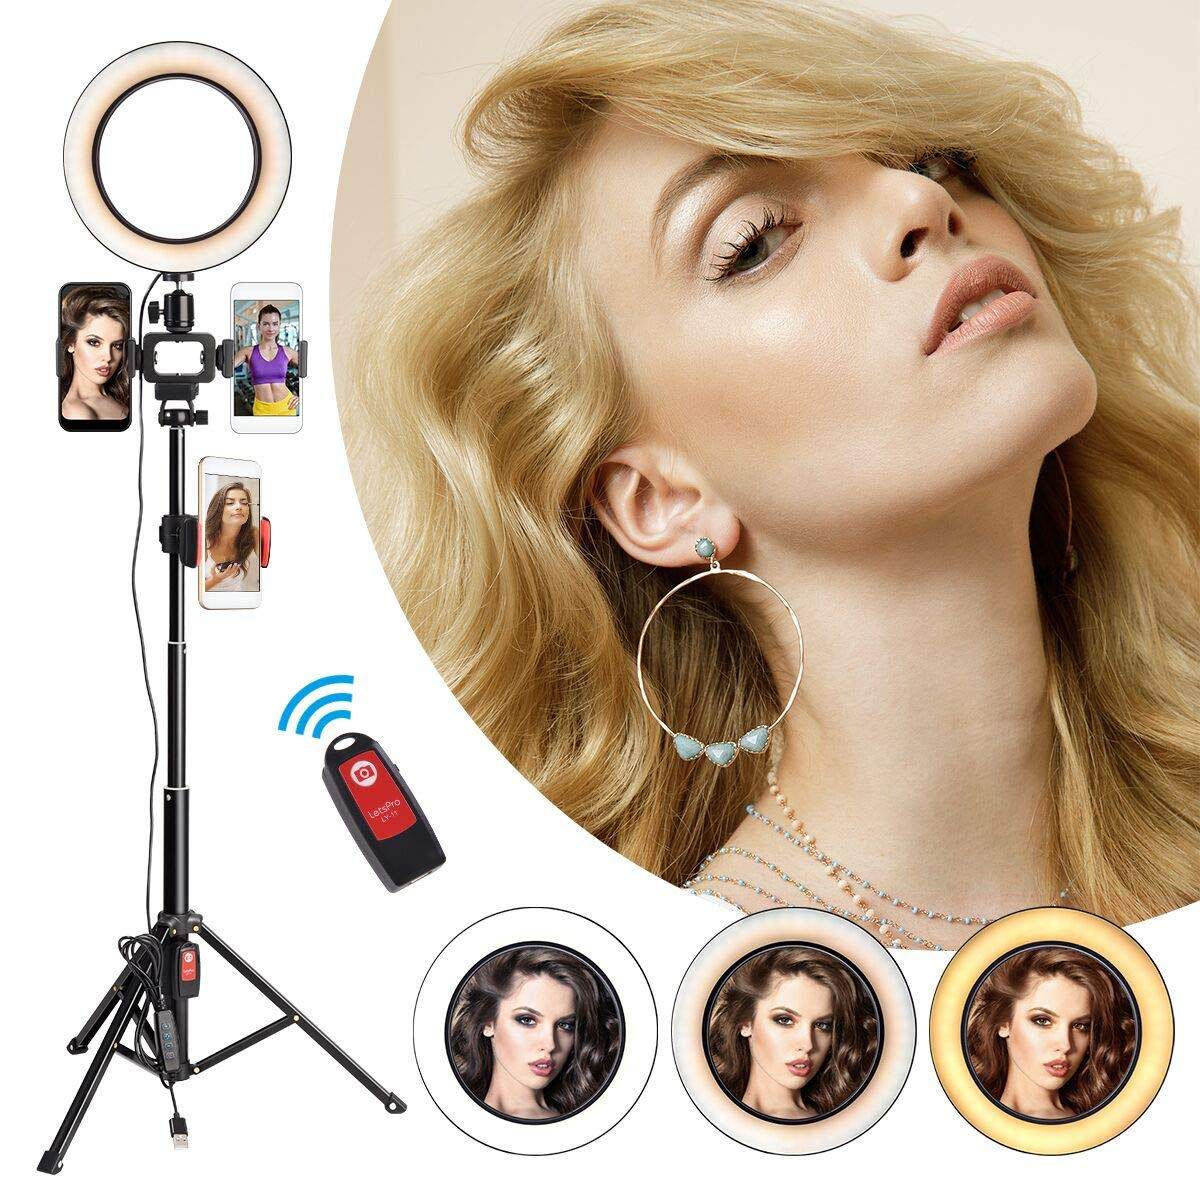 Ring Light with Tripod Stand & 3 Phone Holders, 8'' Selfie Light Ring Remote Control for Record YouTube Video, Living Streaming, Desktop Camera, Makeup, Selfie Photography, Adjustable to 52 Inch